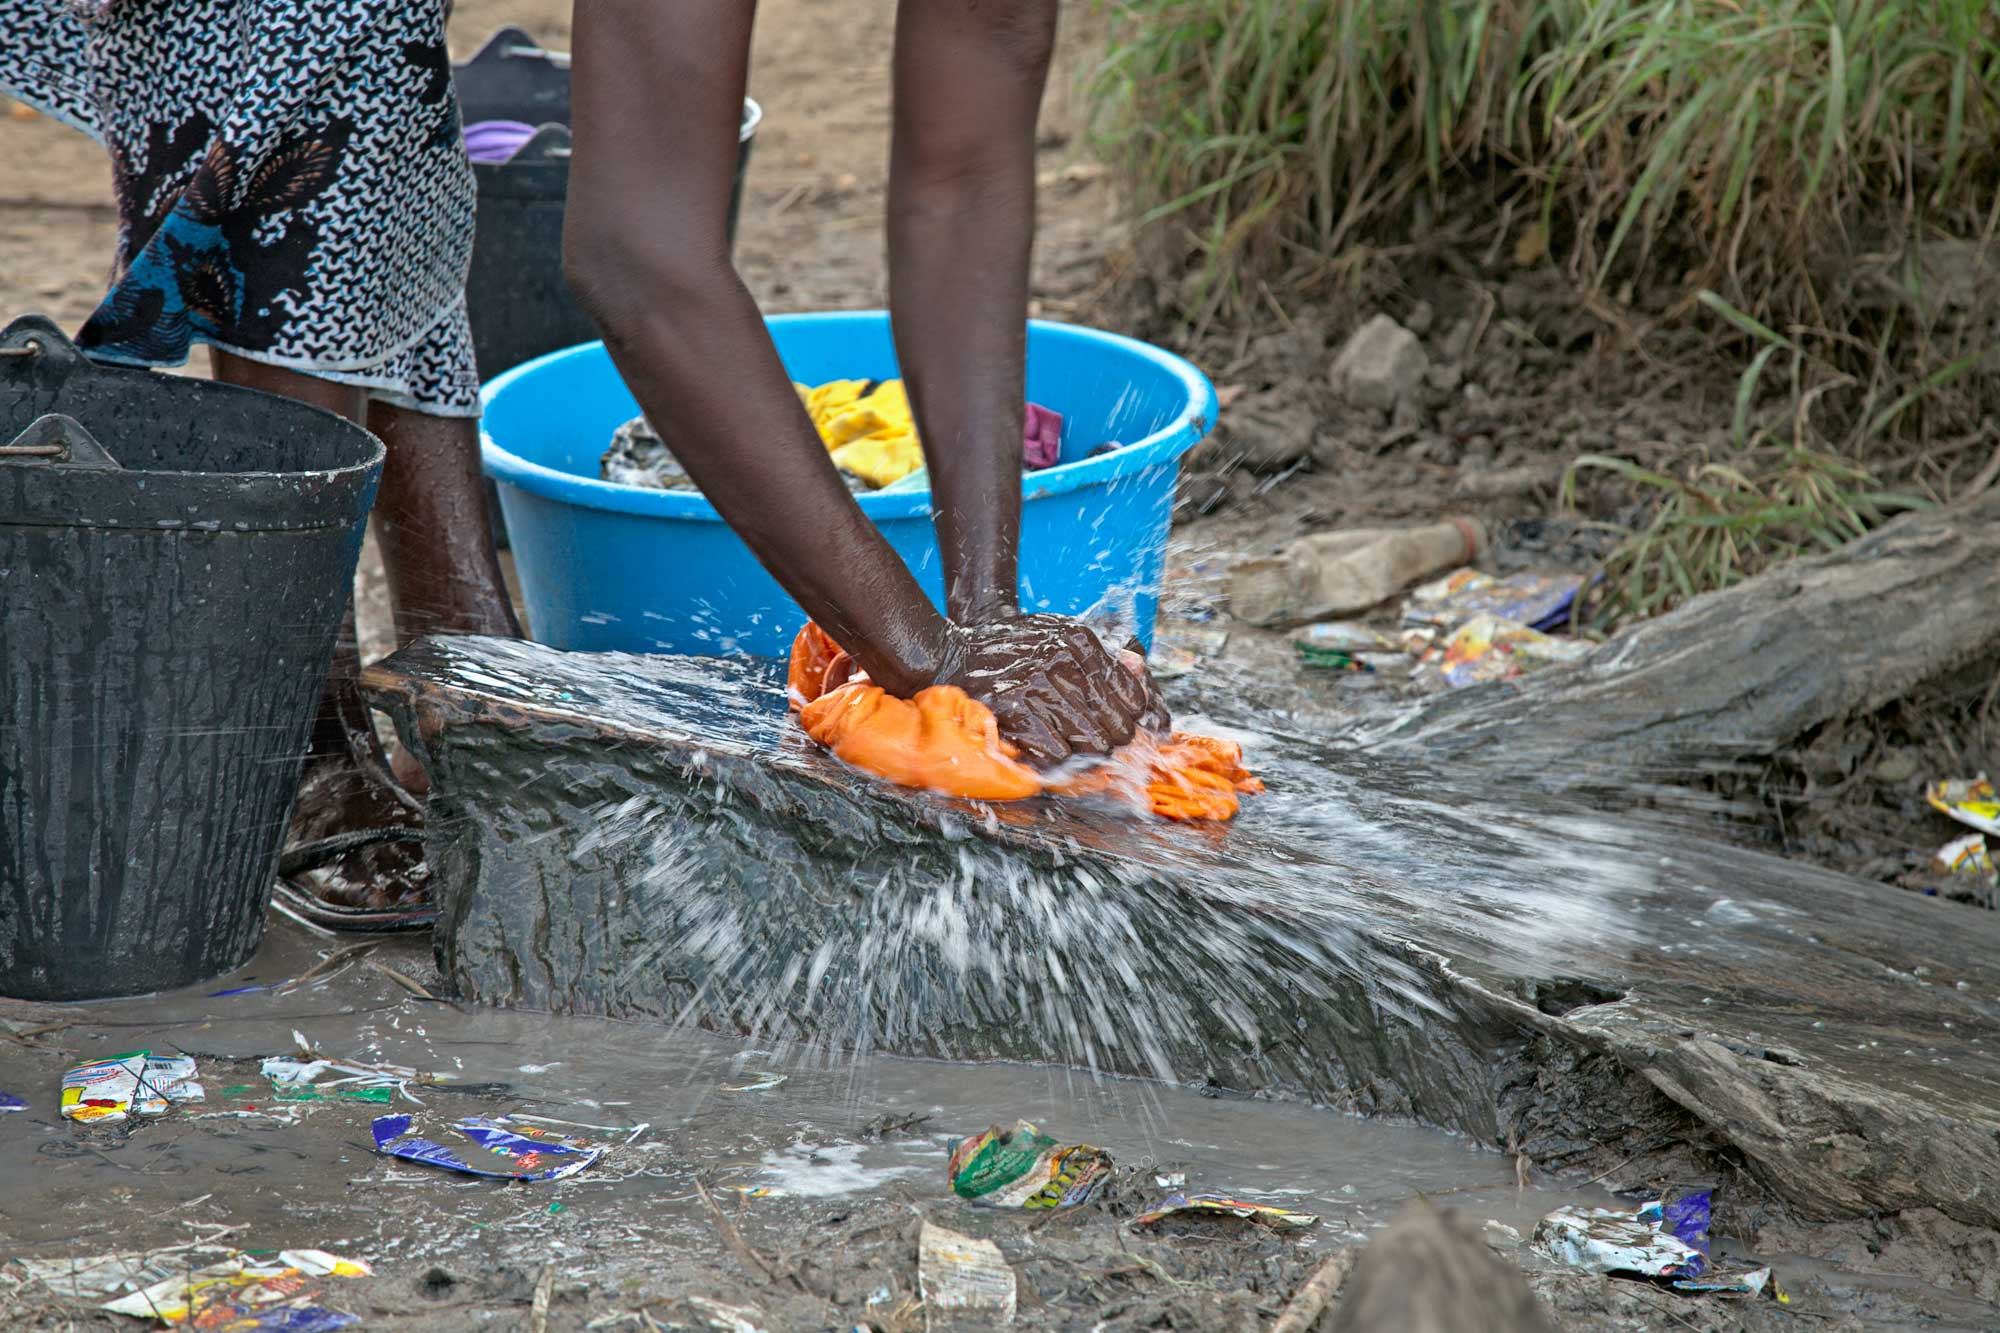 Clothing is slapped against a large stone as a women washes clothes.